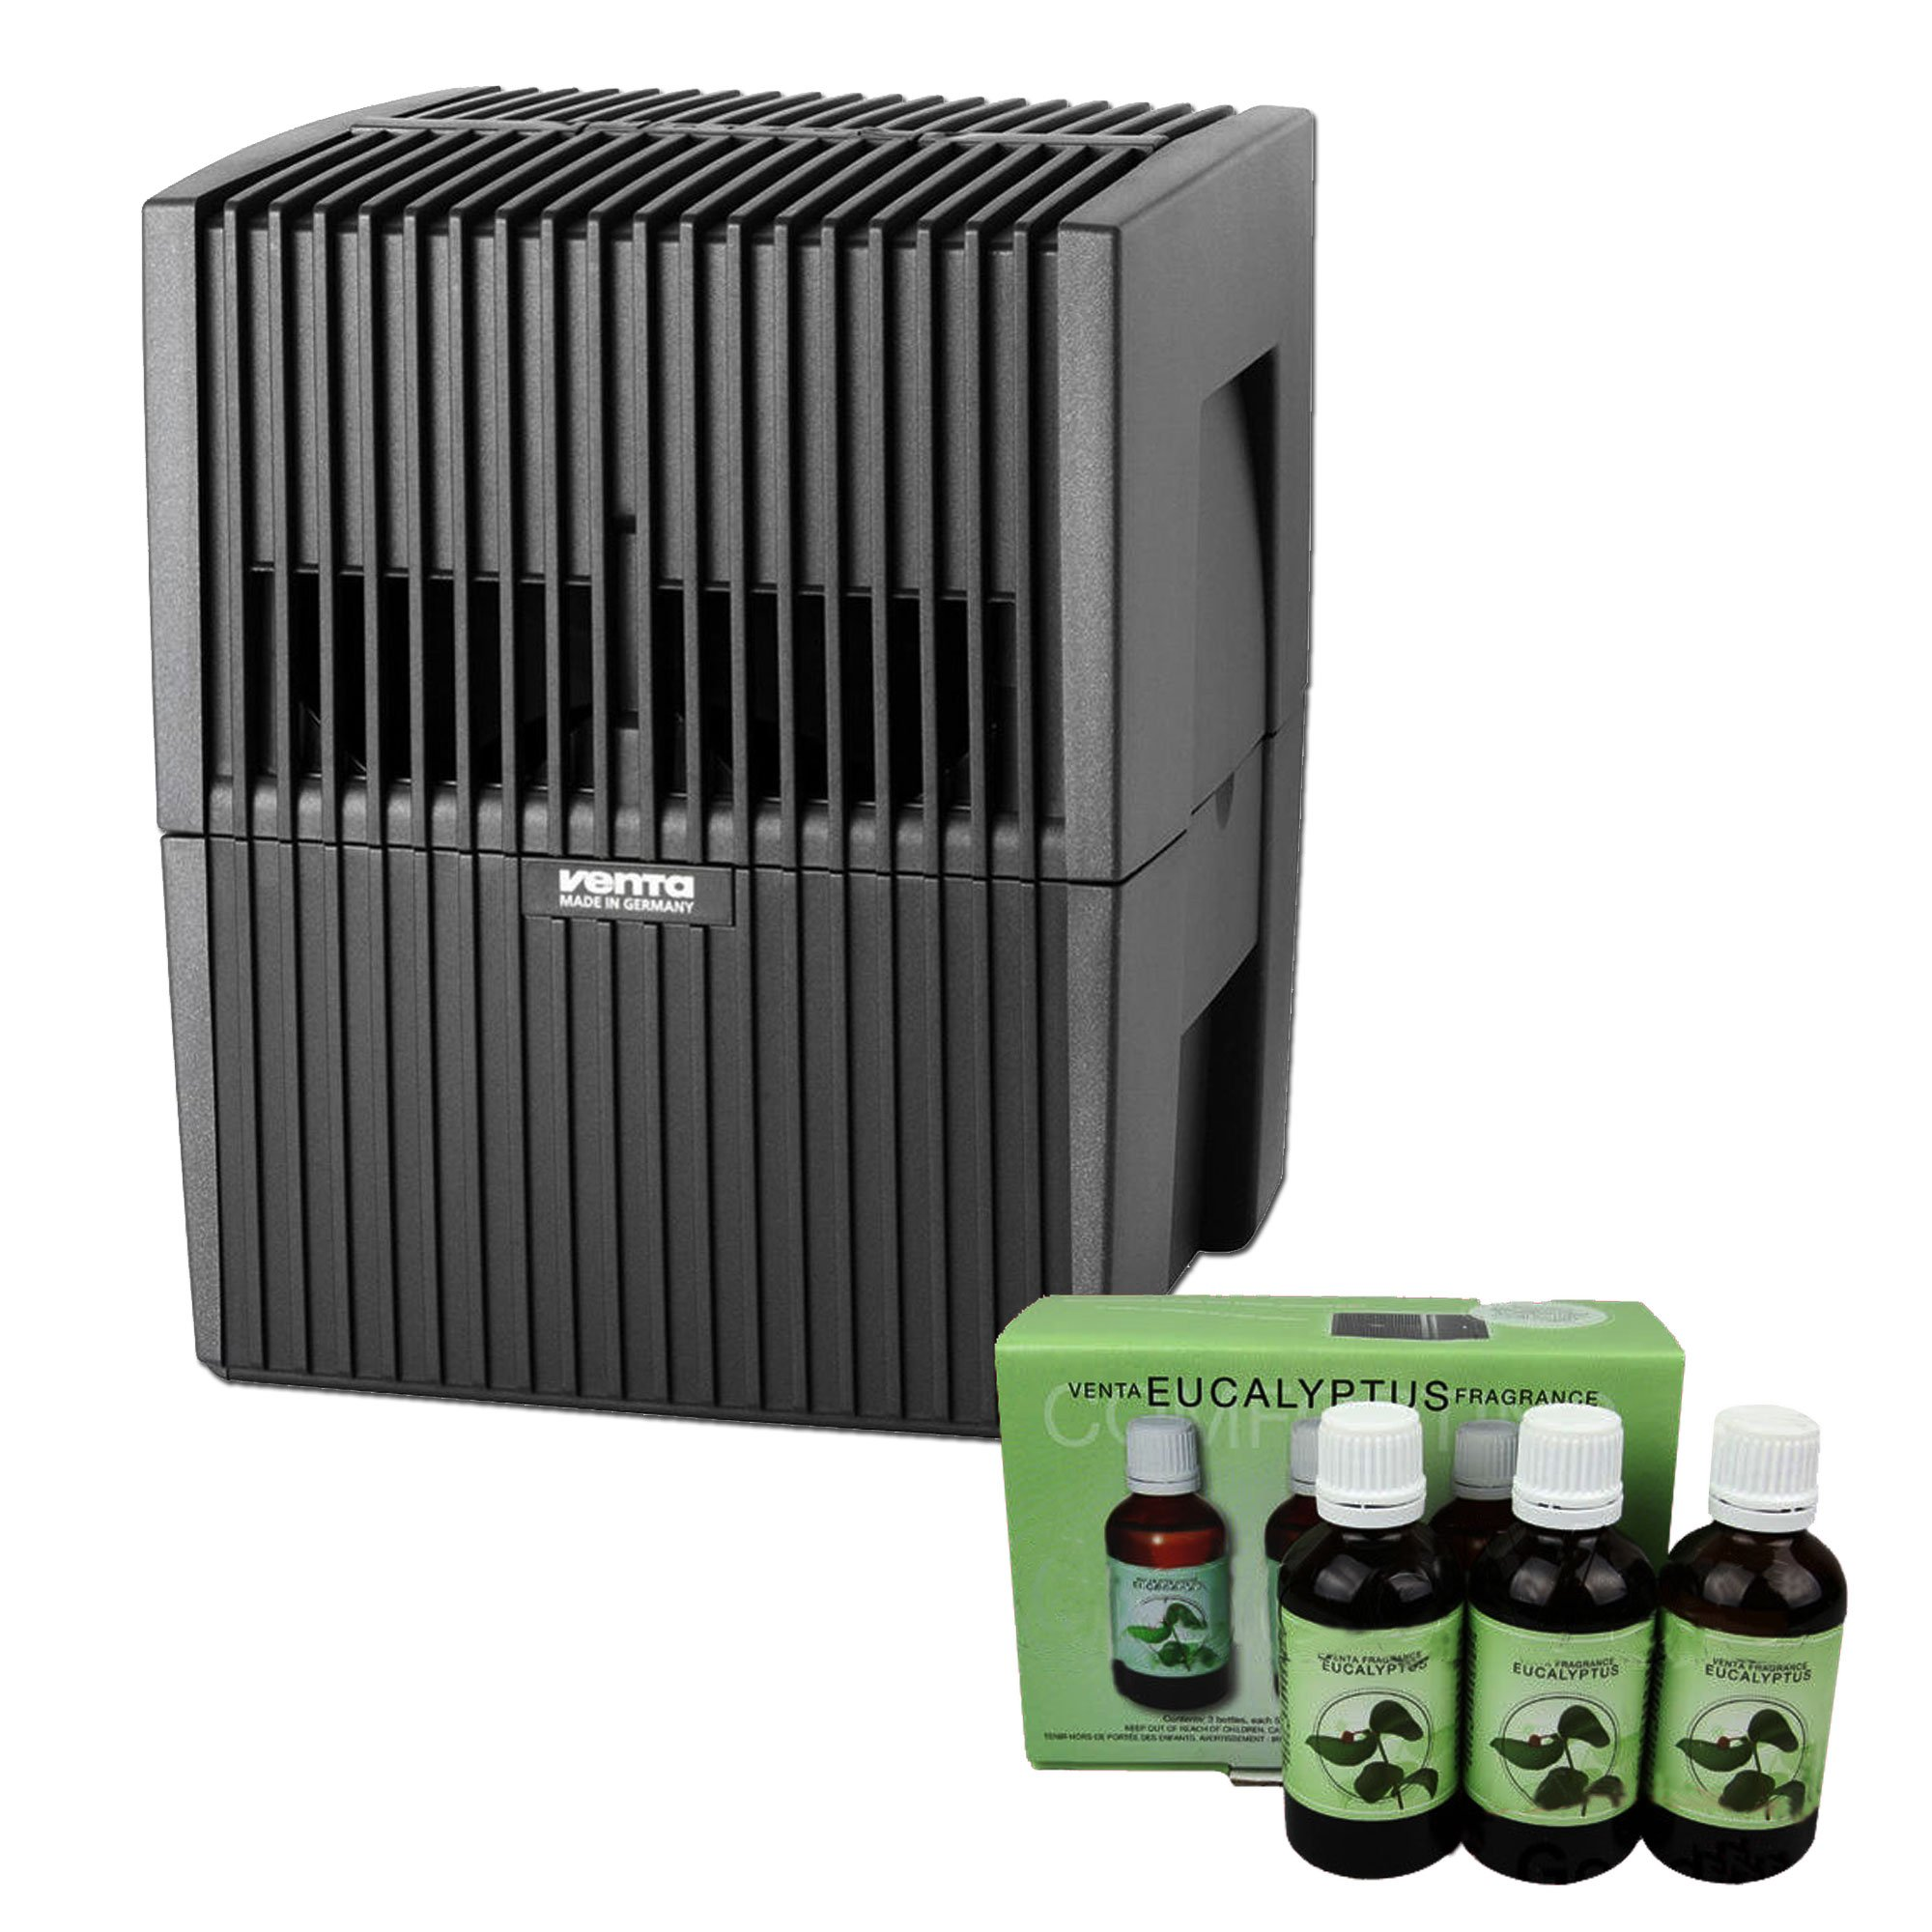 Venta LW15 Humidifier & Airwasher Charcoal Gray Metallic with Venta Airwasher 3-Pack Fragrance